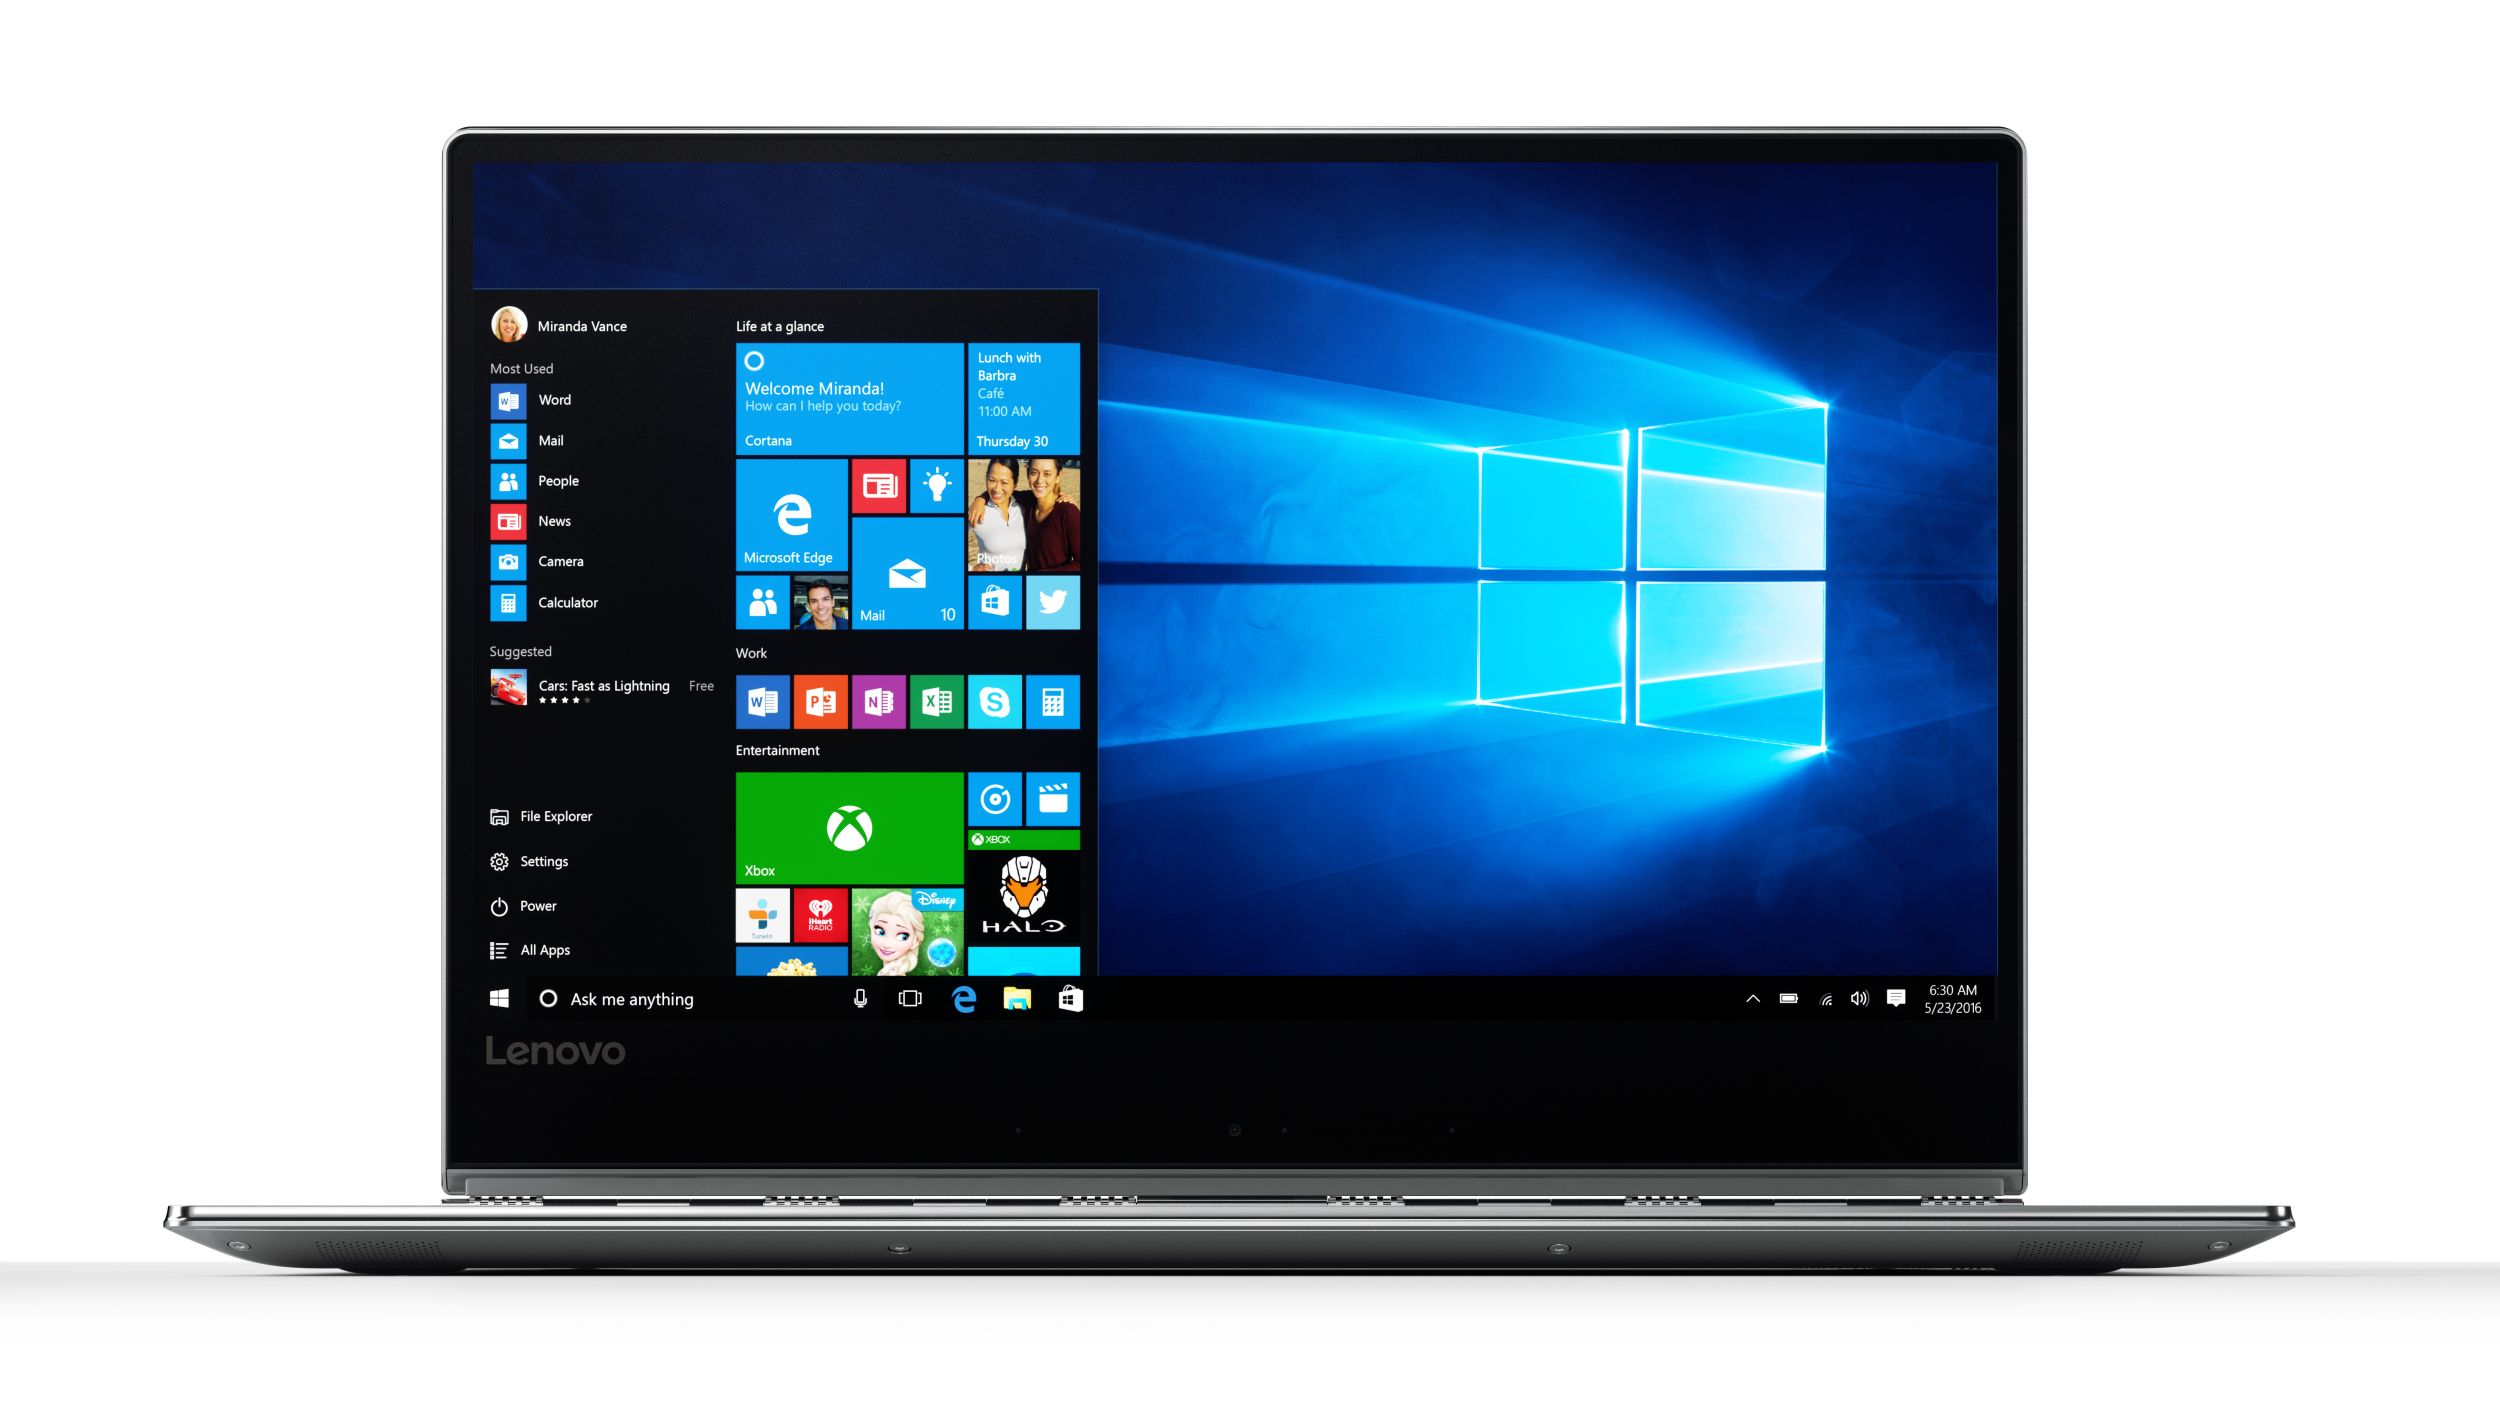 "Lenovo YOGA 910-13IKB i7-7500U 3,50GHz/16GB/SSD 512GB/13,9"" 4K/IPS/multitouch/3r on-site/WIN10 stříbrná 80VF001PCK"